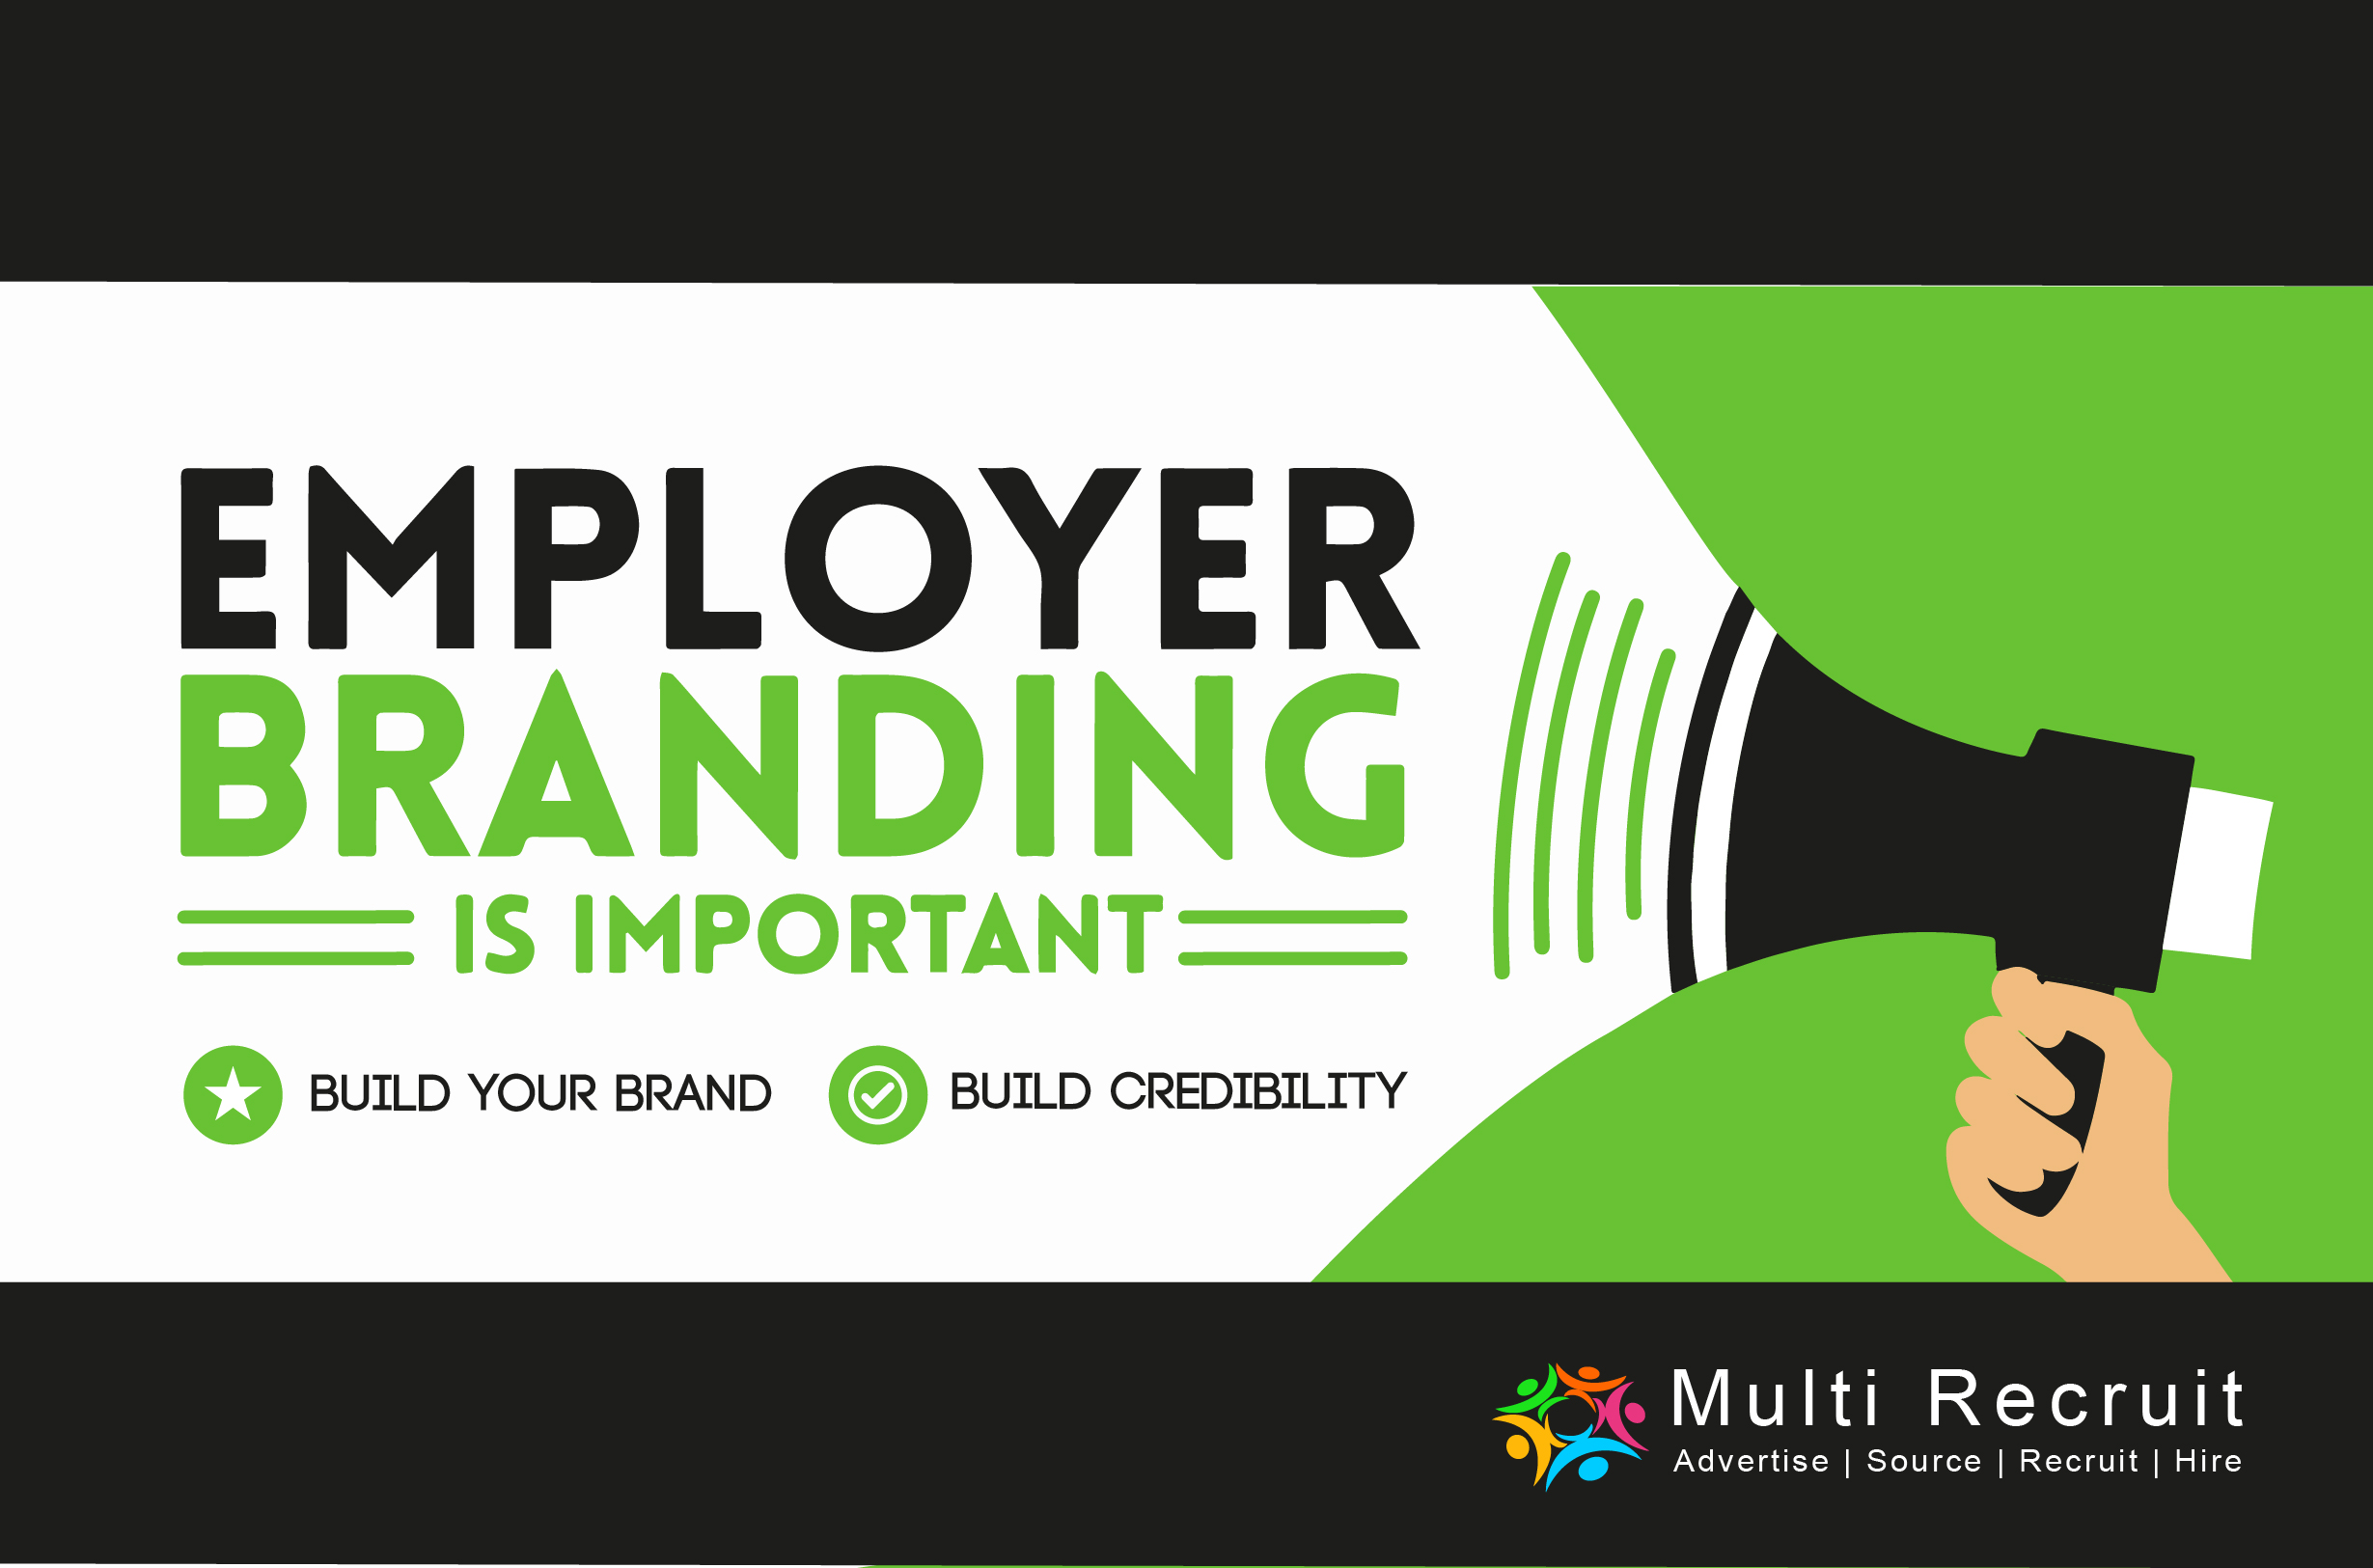 5 Best Practices To Approach Employer Branding the Right Way